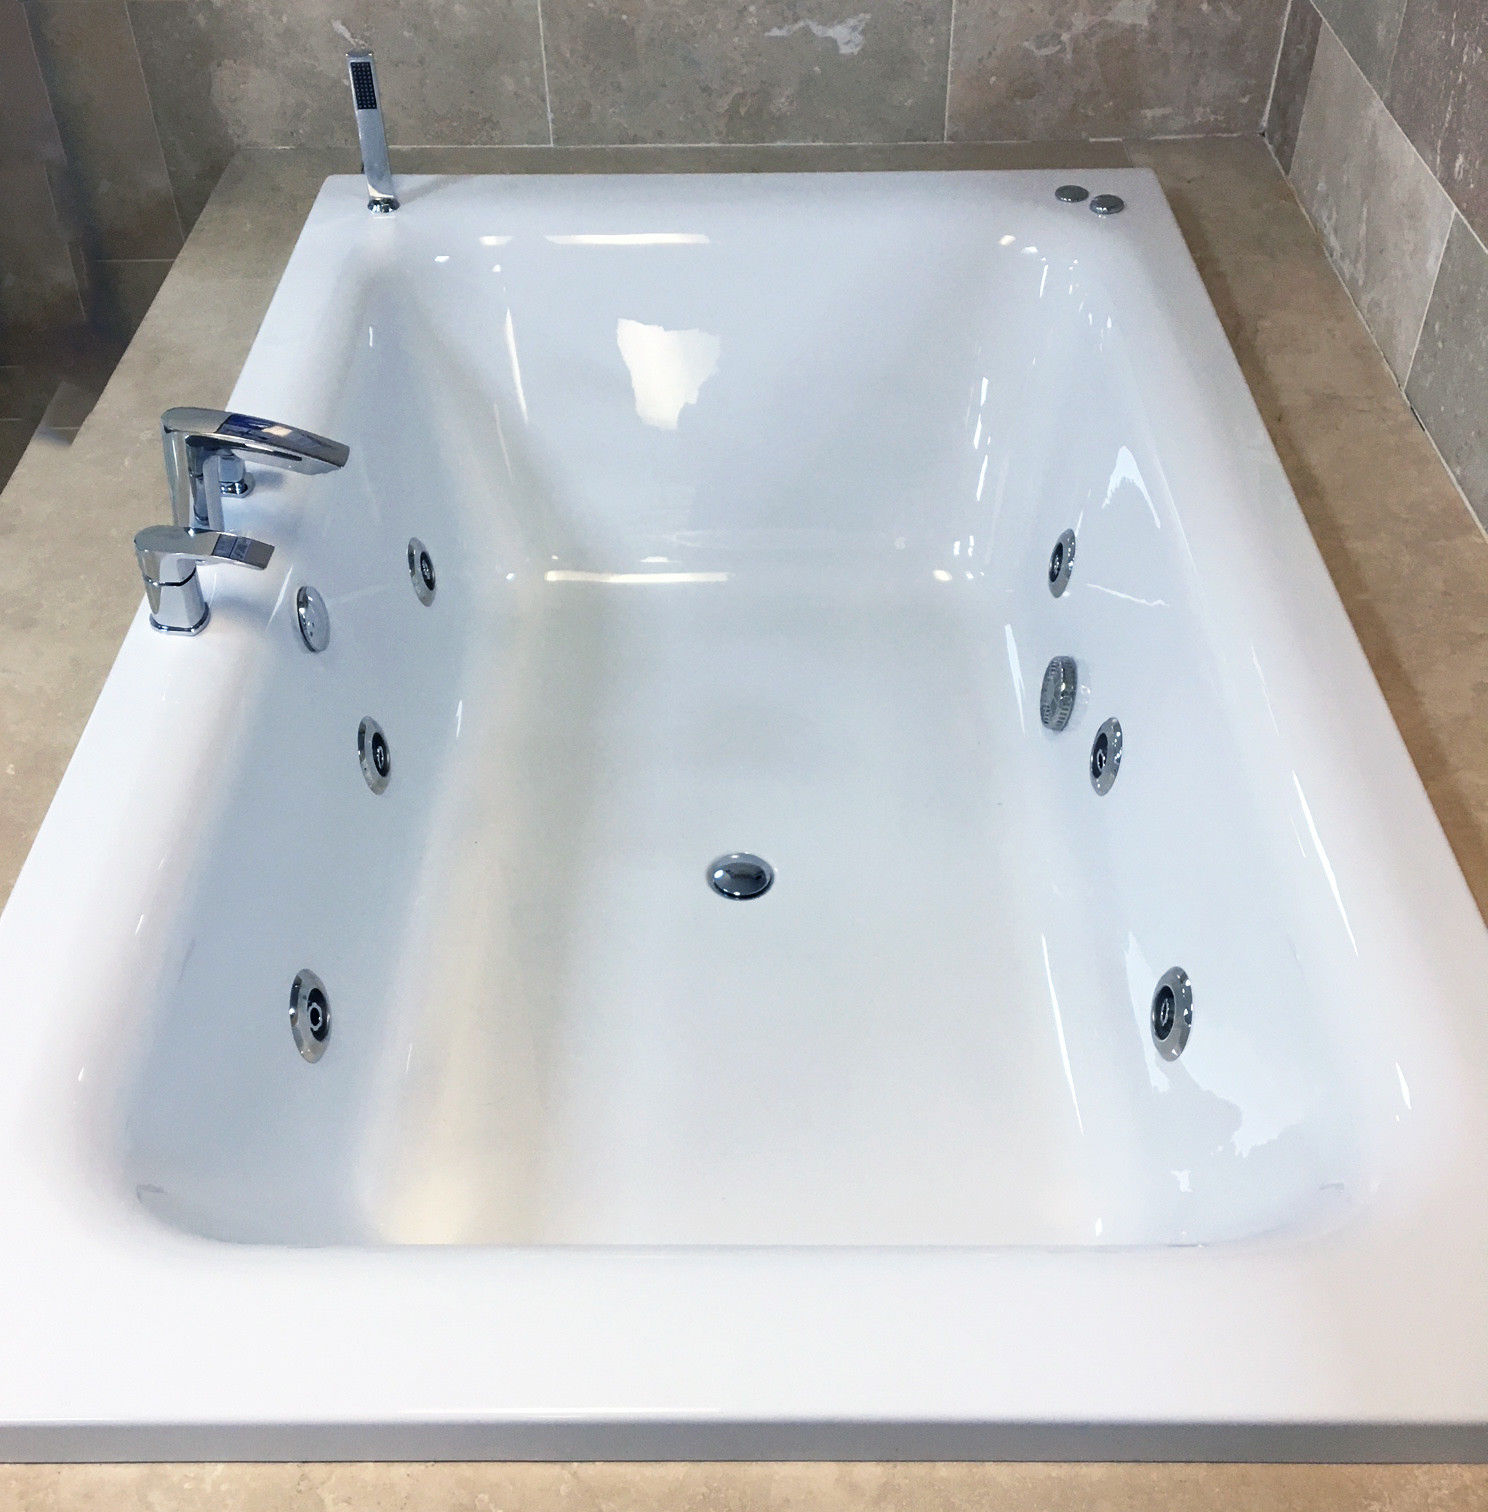 Jacuzzi Whirlpool Details About Olena 1900 X 1200mm Luxury Large Bath Whirlpool Jacuzzi Type Spa Jets Option